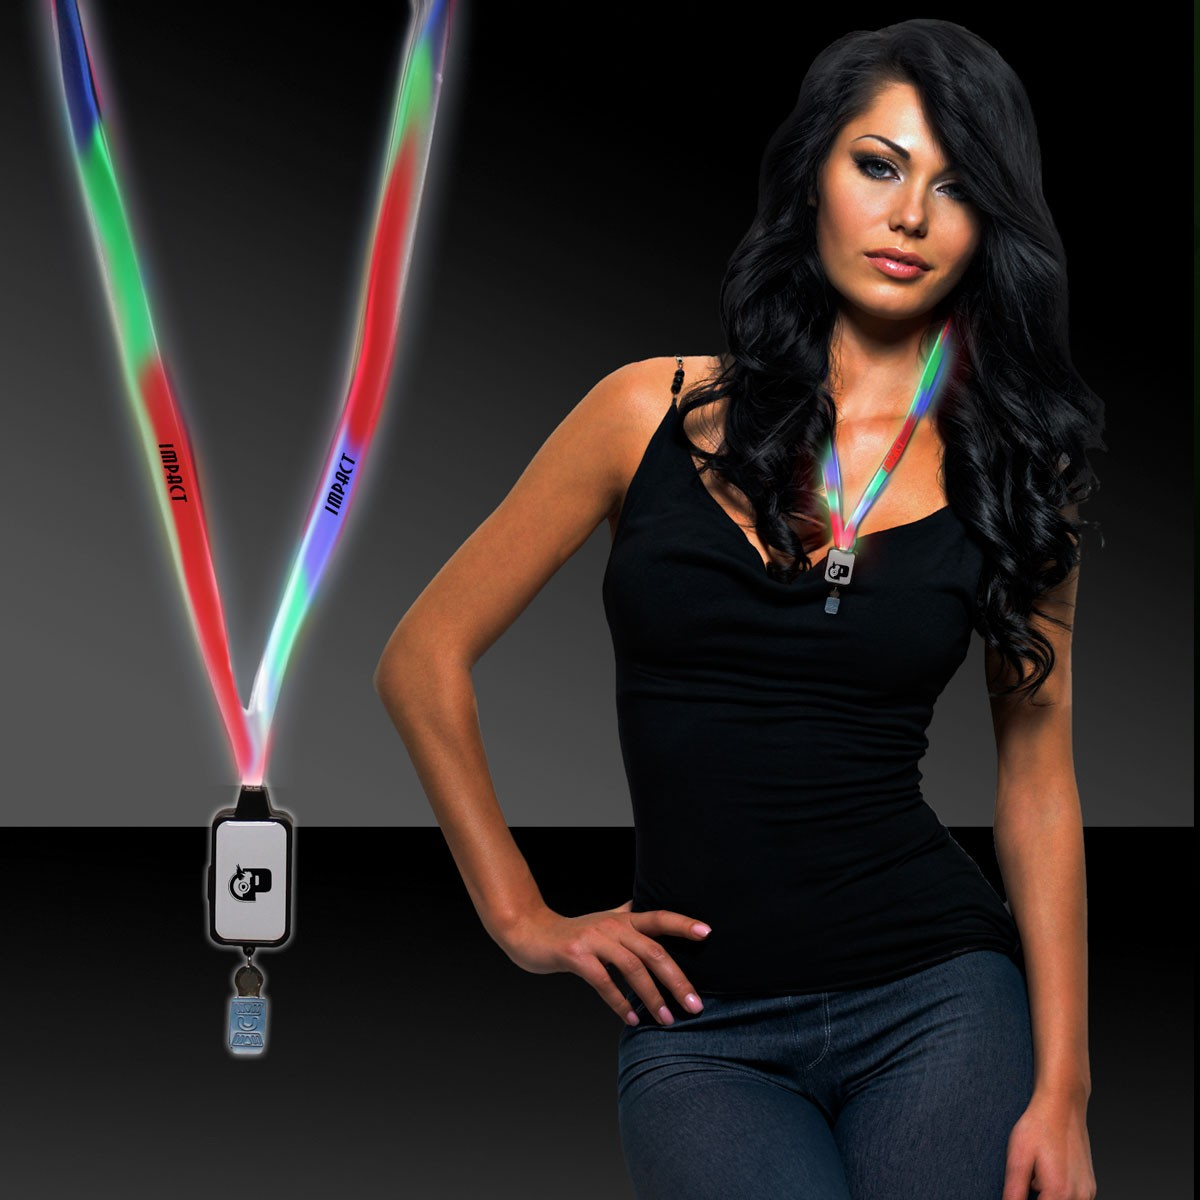 MULTI-LED LANYARD WBADGE CLIP